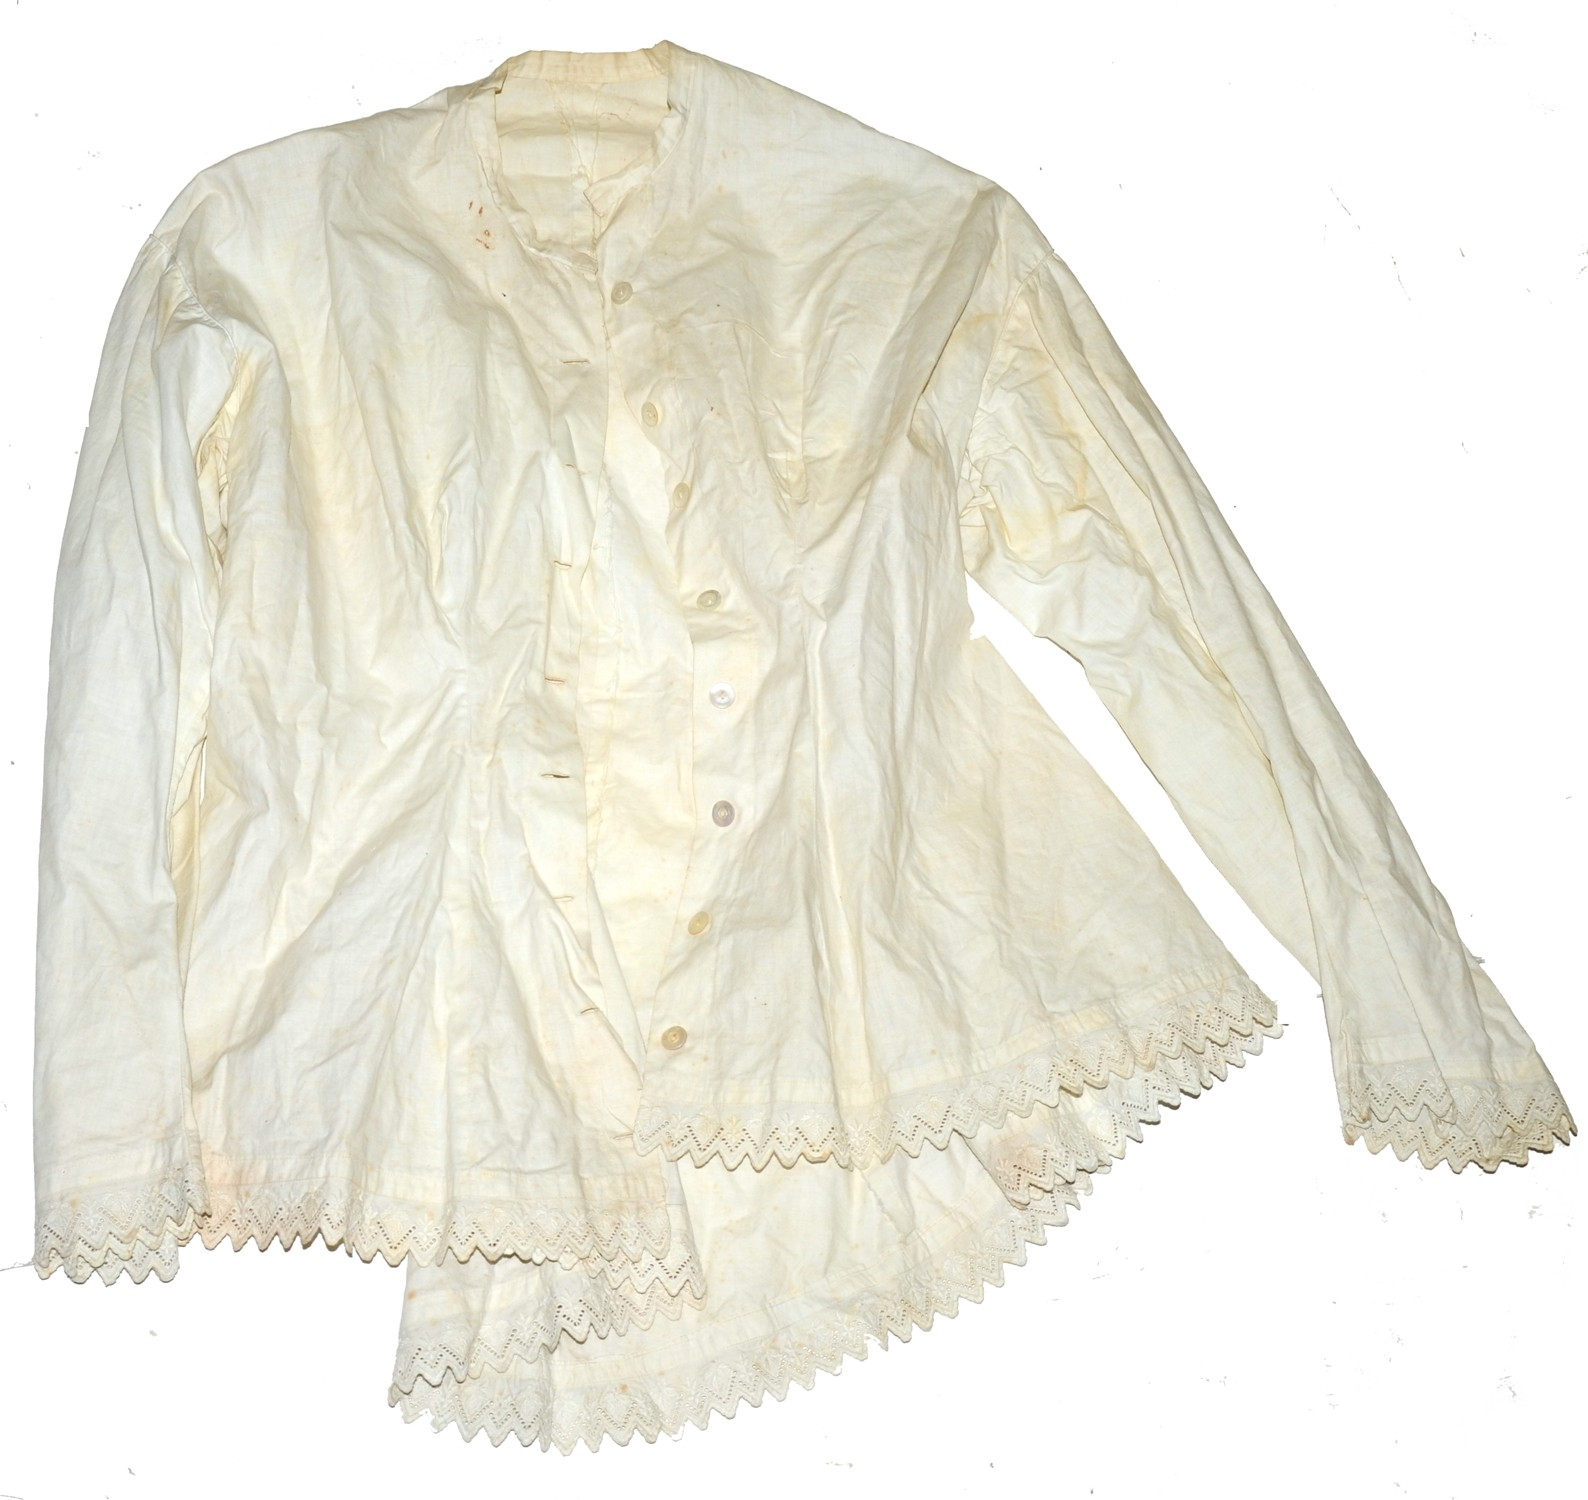 WHITE COTTON COMBING JACKET C.1855-1865